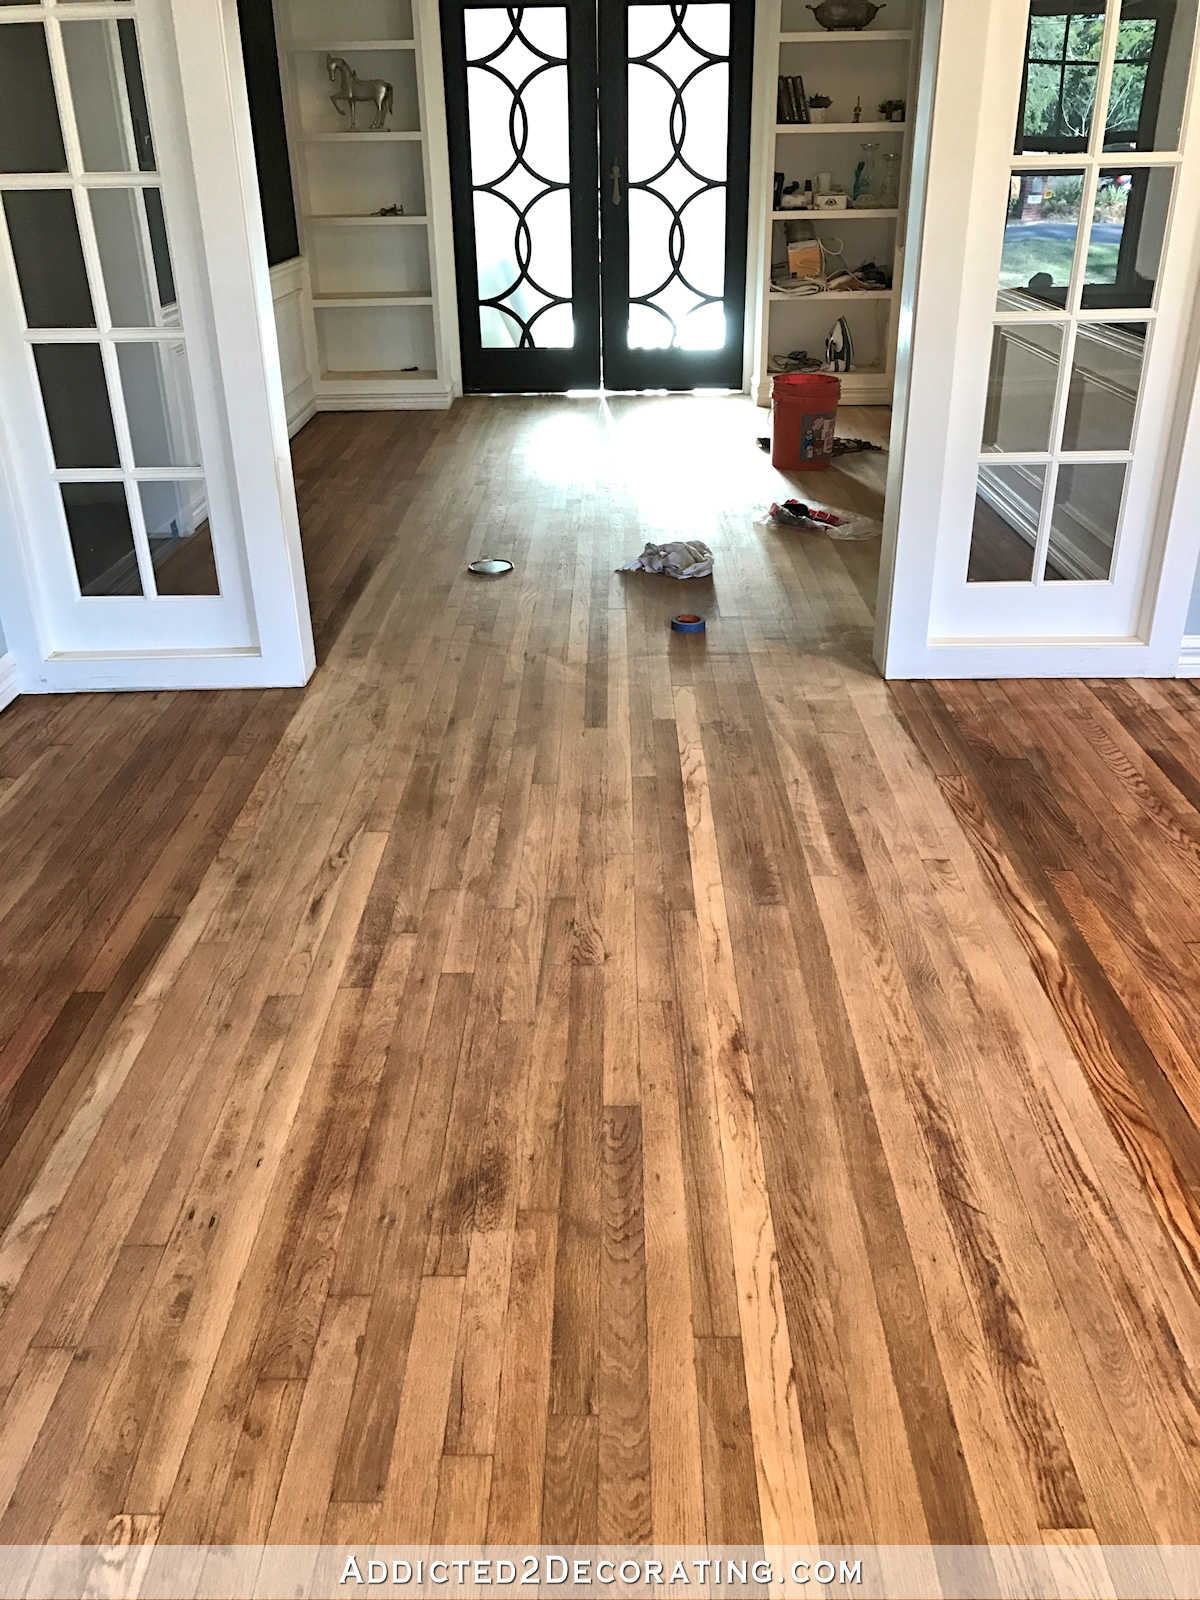 hardwood floor refinishing cleveland of 19 unique how much does it cost to refinish hardwood floors gallery with how much does it cost to refinish hardwood floors unique adventures in staining my red oak